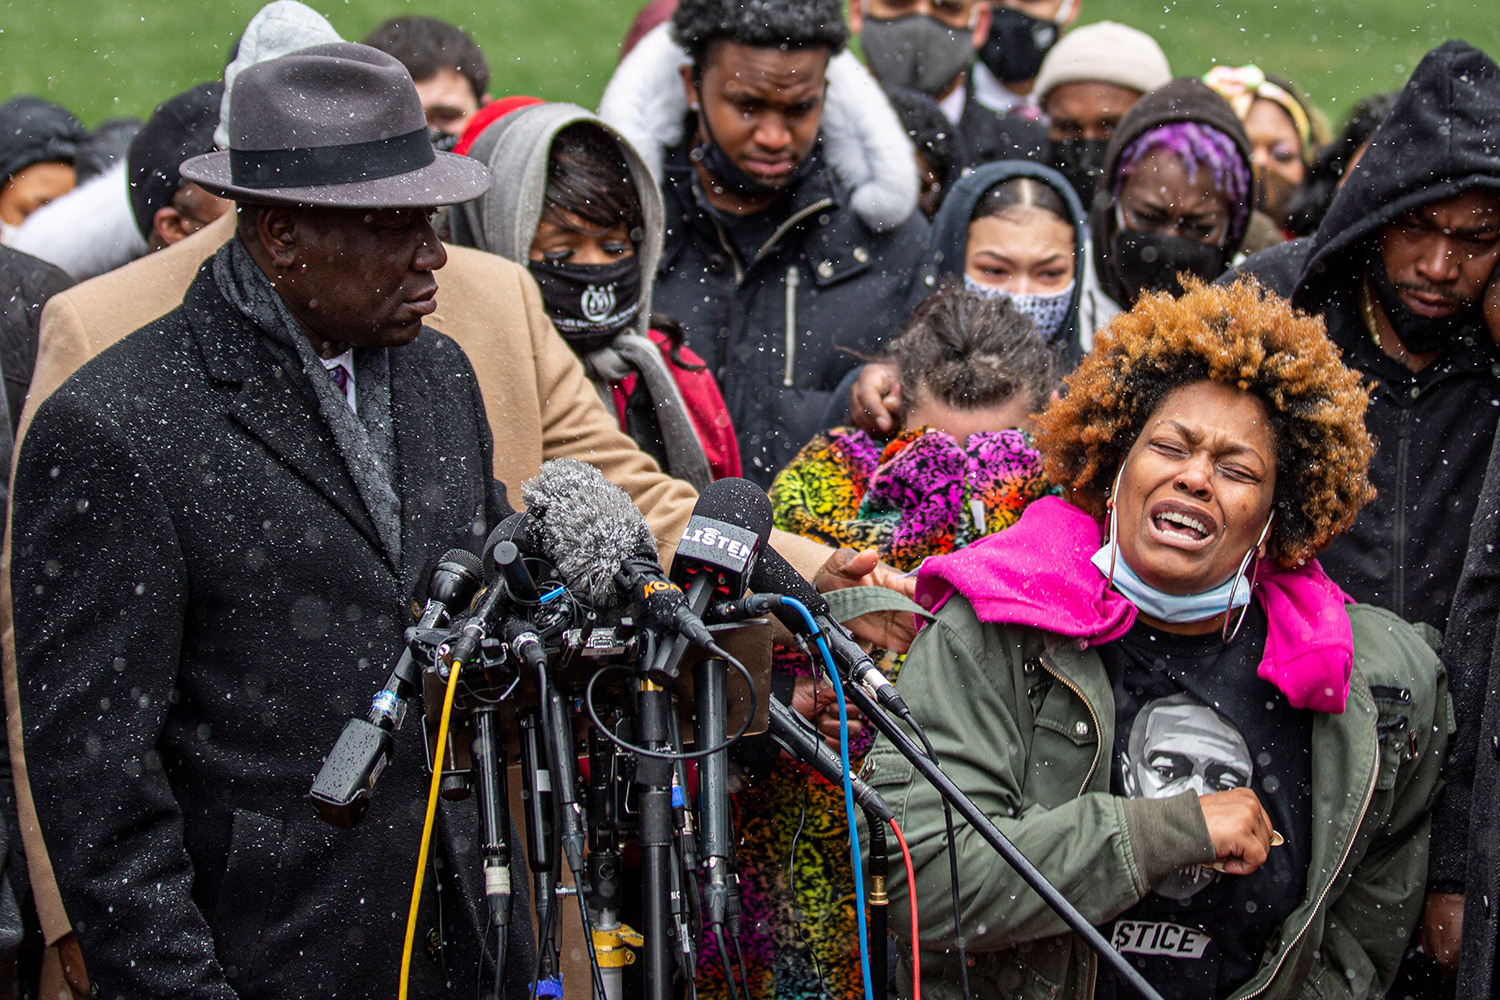 Naisha Wright, right, Daunte Wright's aunt, grieves during a press conference at the Hennepin County Government Center in Minneapolis, Minnesota, on April 13. Two days earlier, Daunte Wright was killed by police during a traffic stop. KEREM YUCEL/AFP via Getty Images